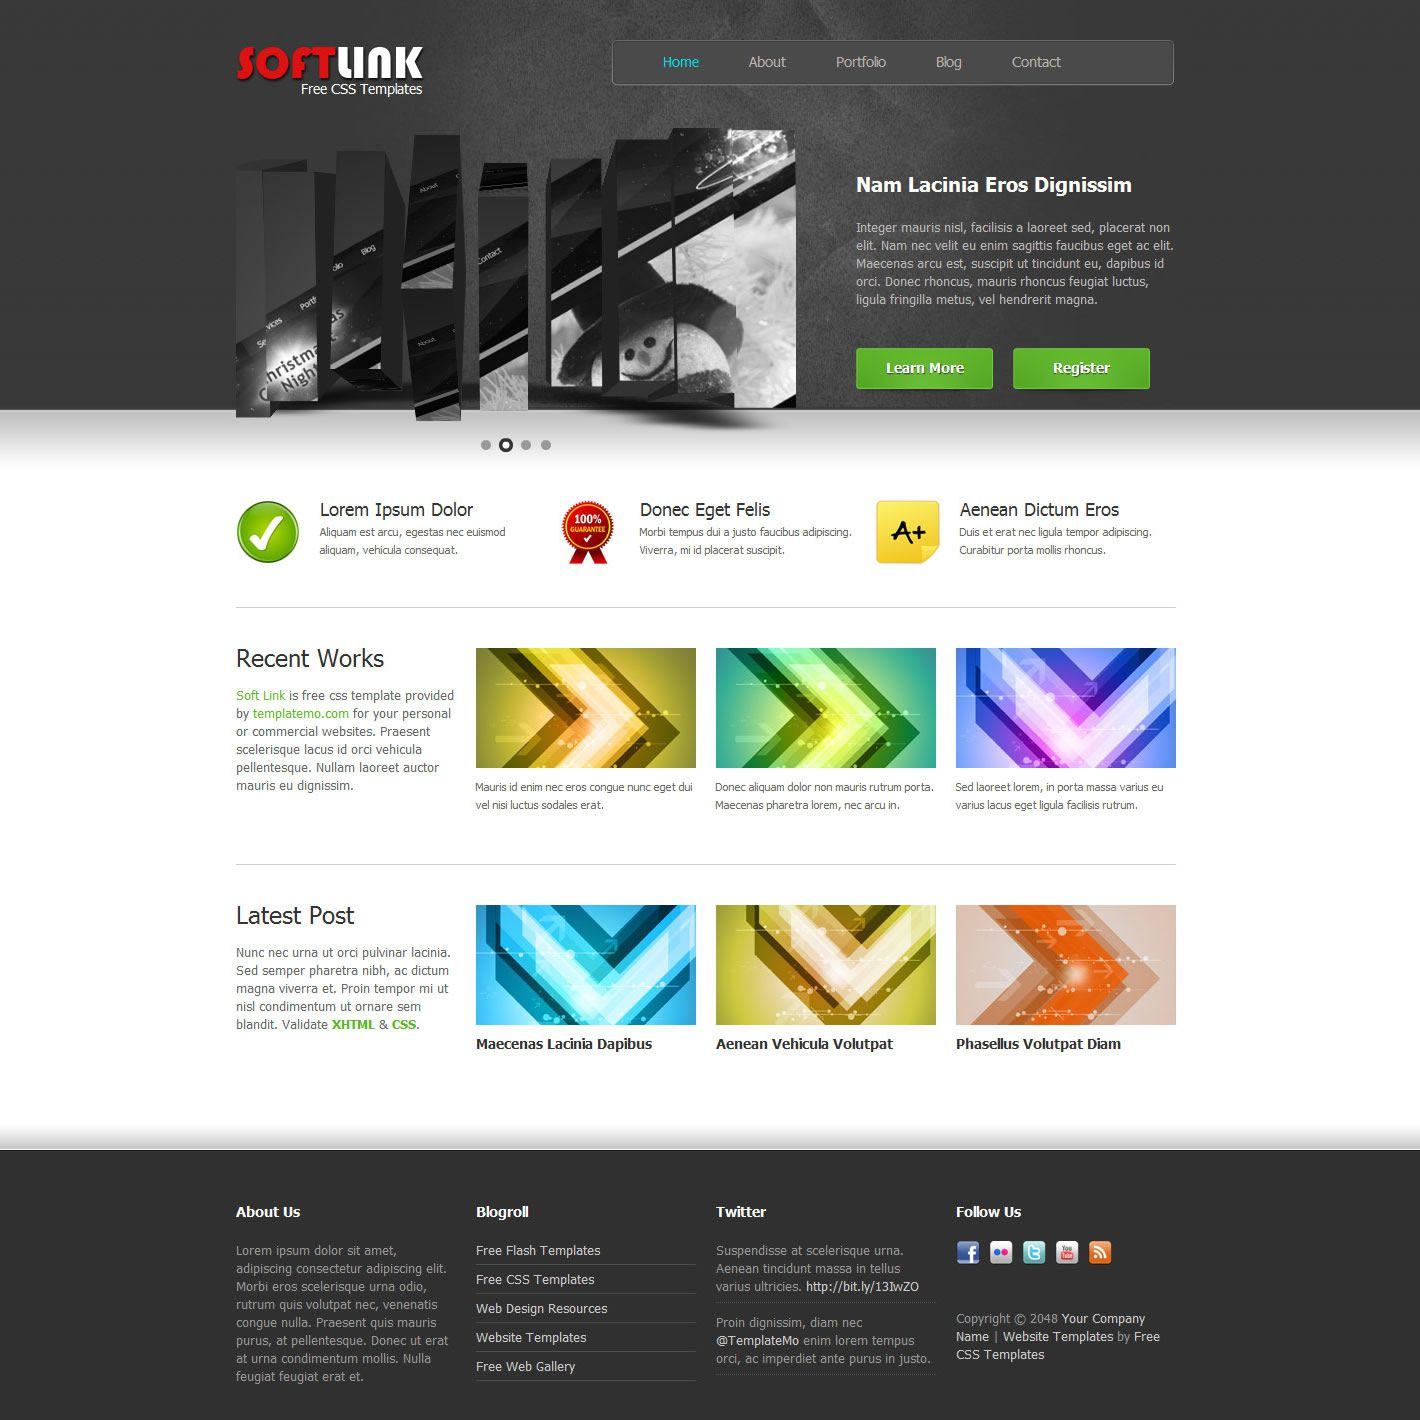 006 Awful Free Website Template Dreamweaver Photo  Ecommerce Download Construction HtmlFull